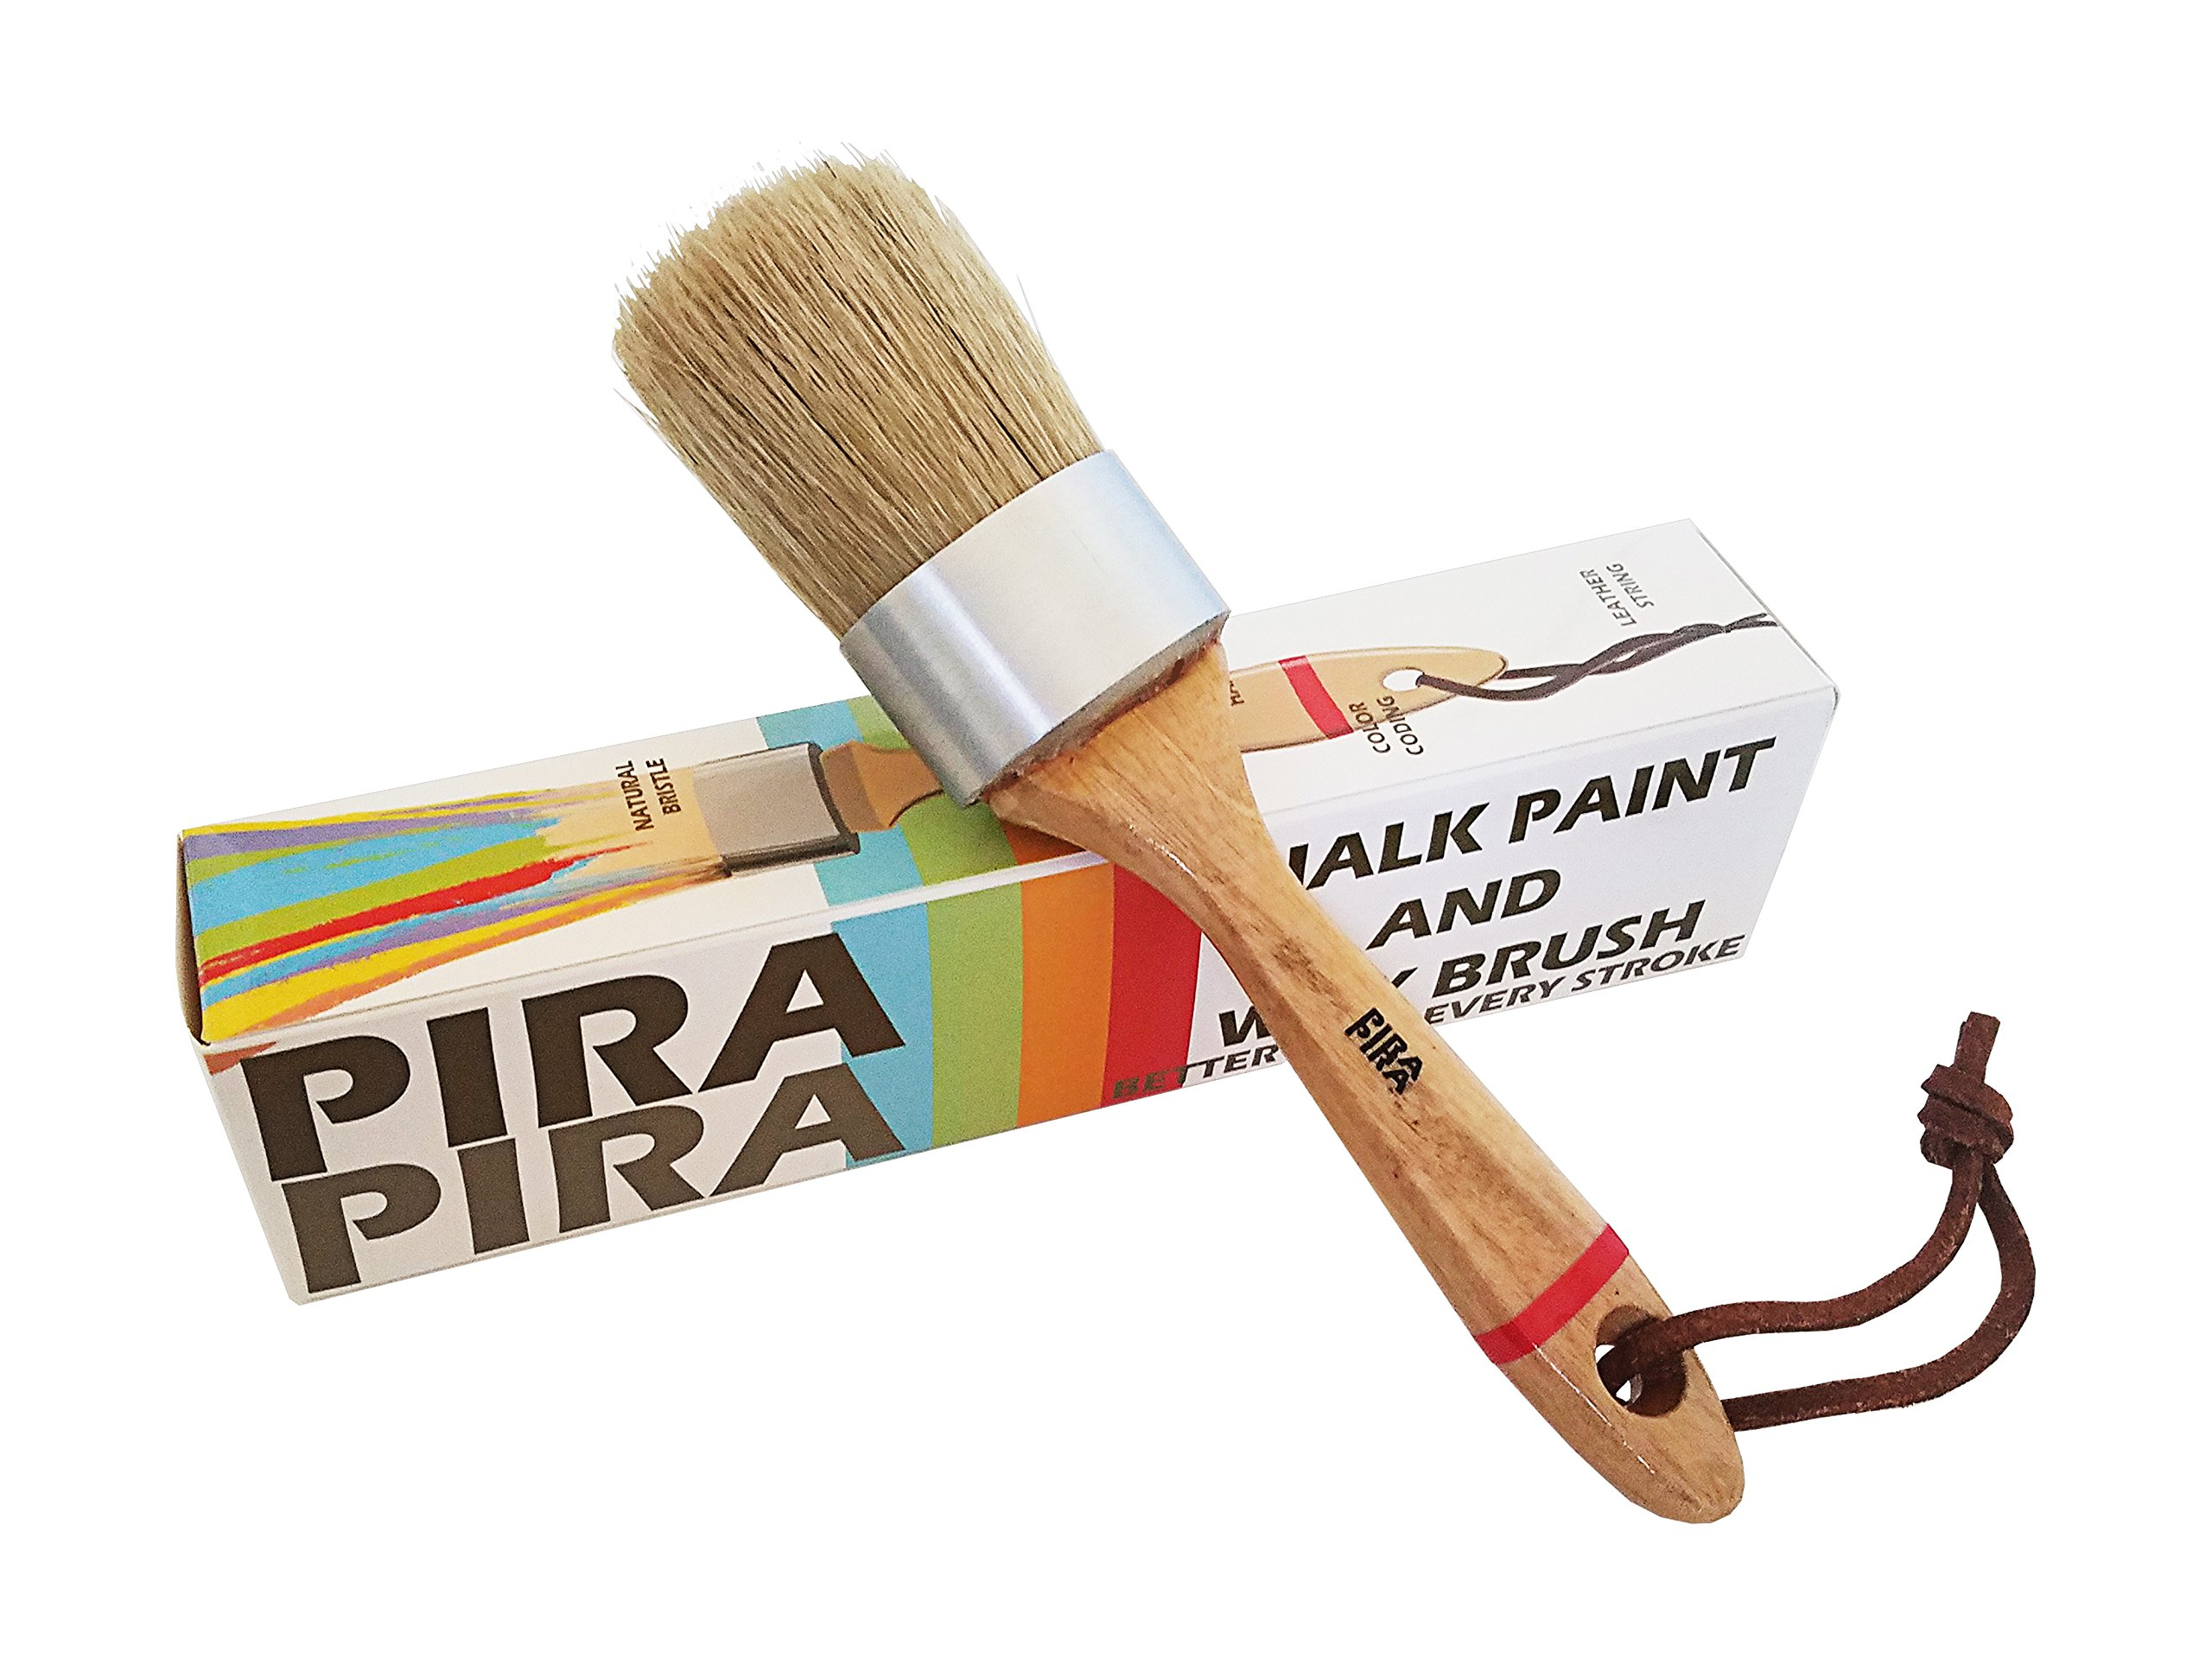 Chalk Paint and Wax Brush by PiraPira/ Natural Bristles for Maximum Performance/ Excellent with Furniture and Multi Art Purposes/ Environment Friendly Materials